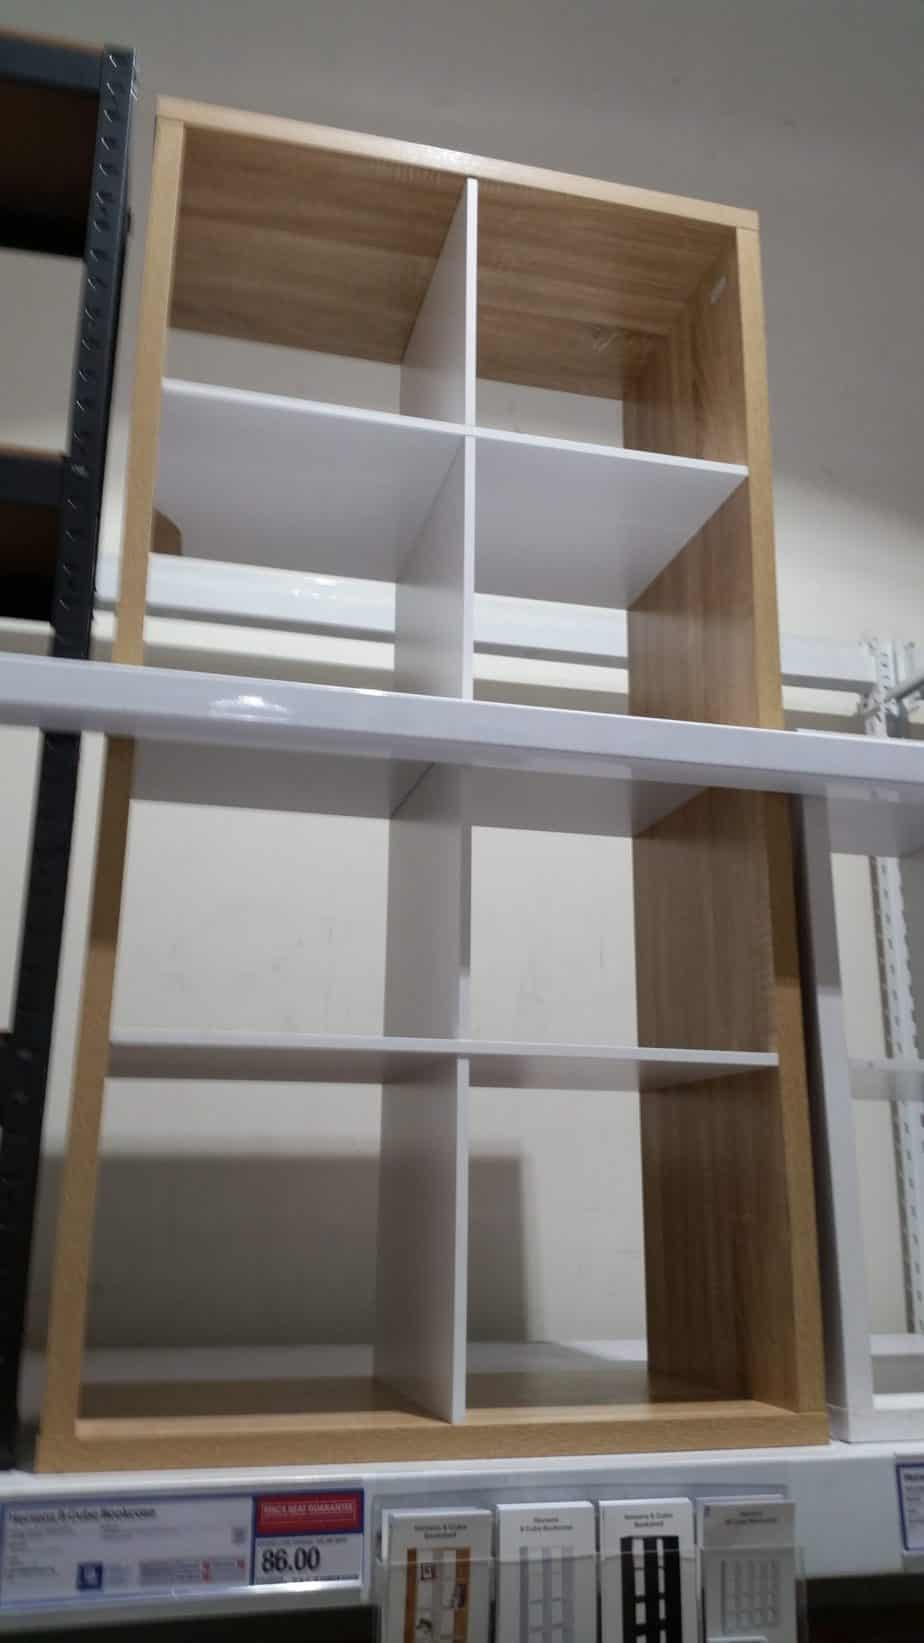 This is what every homeschool room needs. A modular bookcase. I found this one at Officeworks but I also think you can do an IKEA homeschool room and get something comparable. #homeschool room. #howdoihomeschool